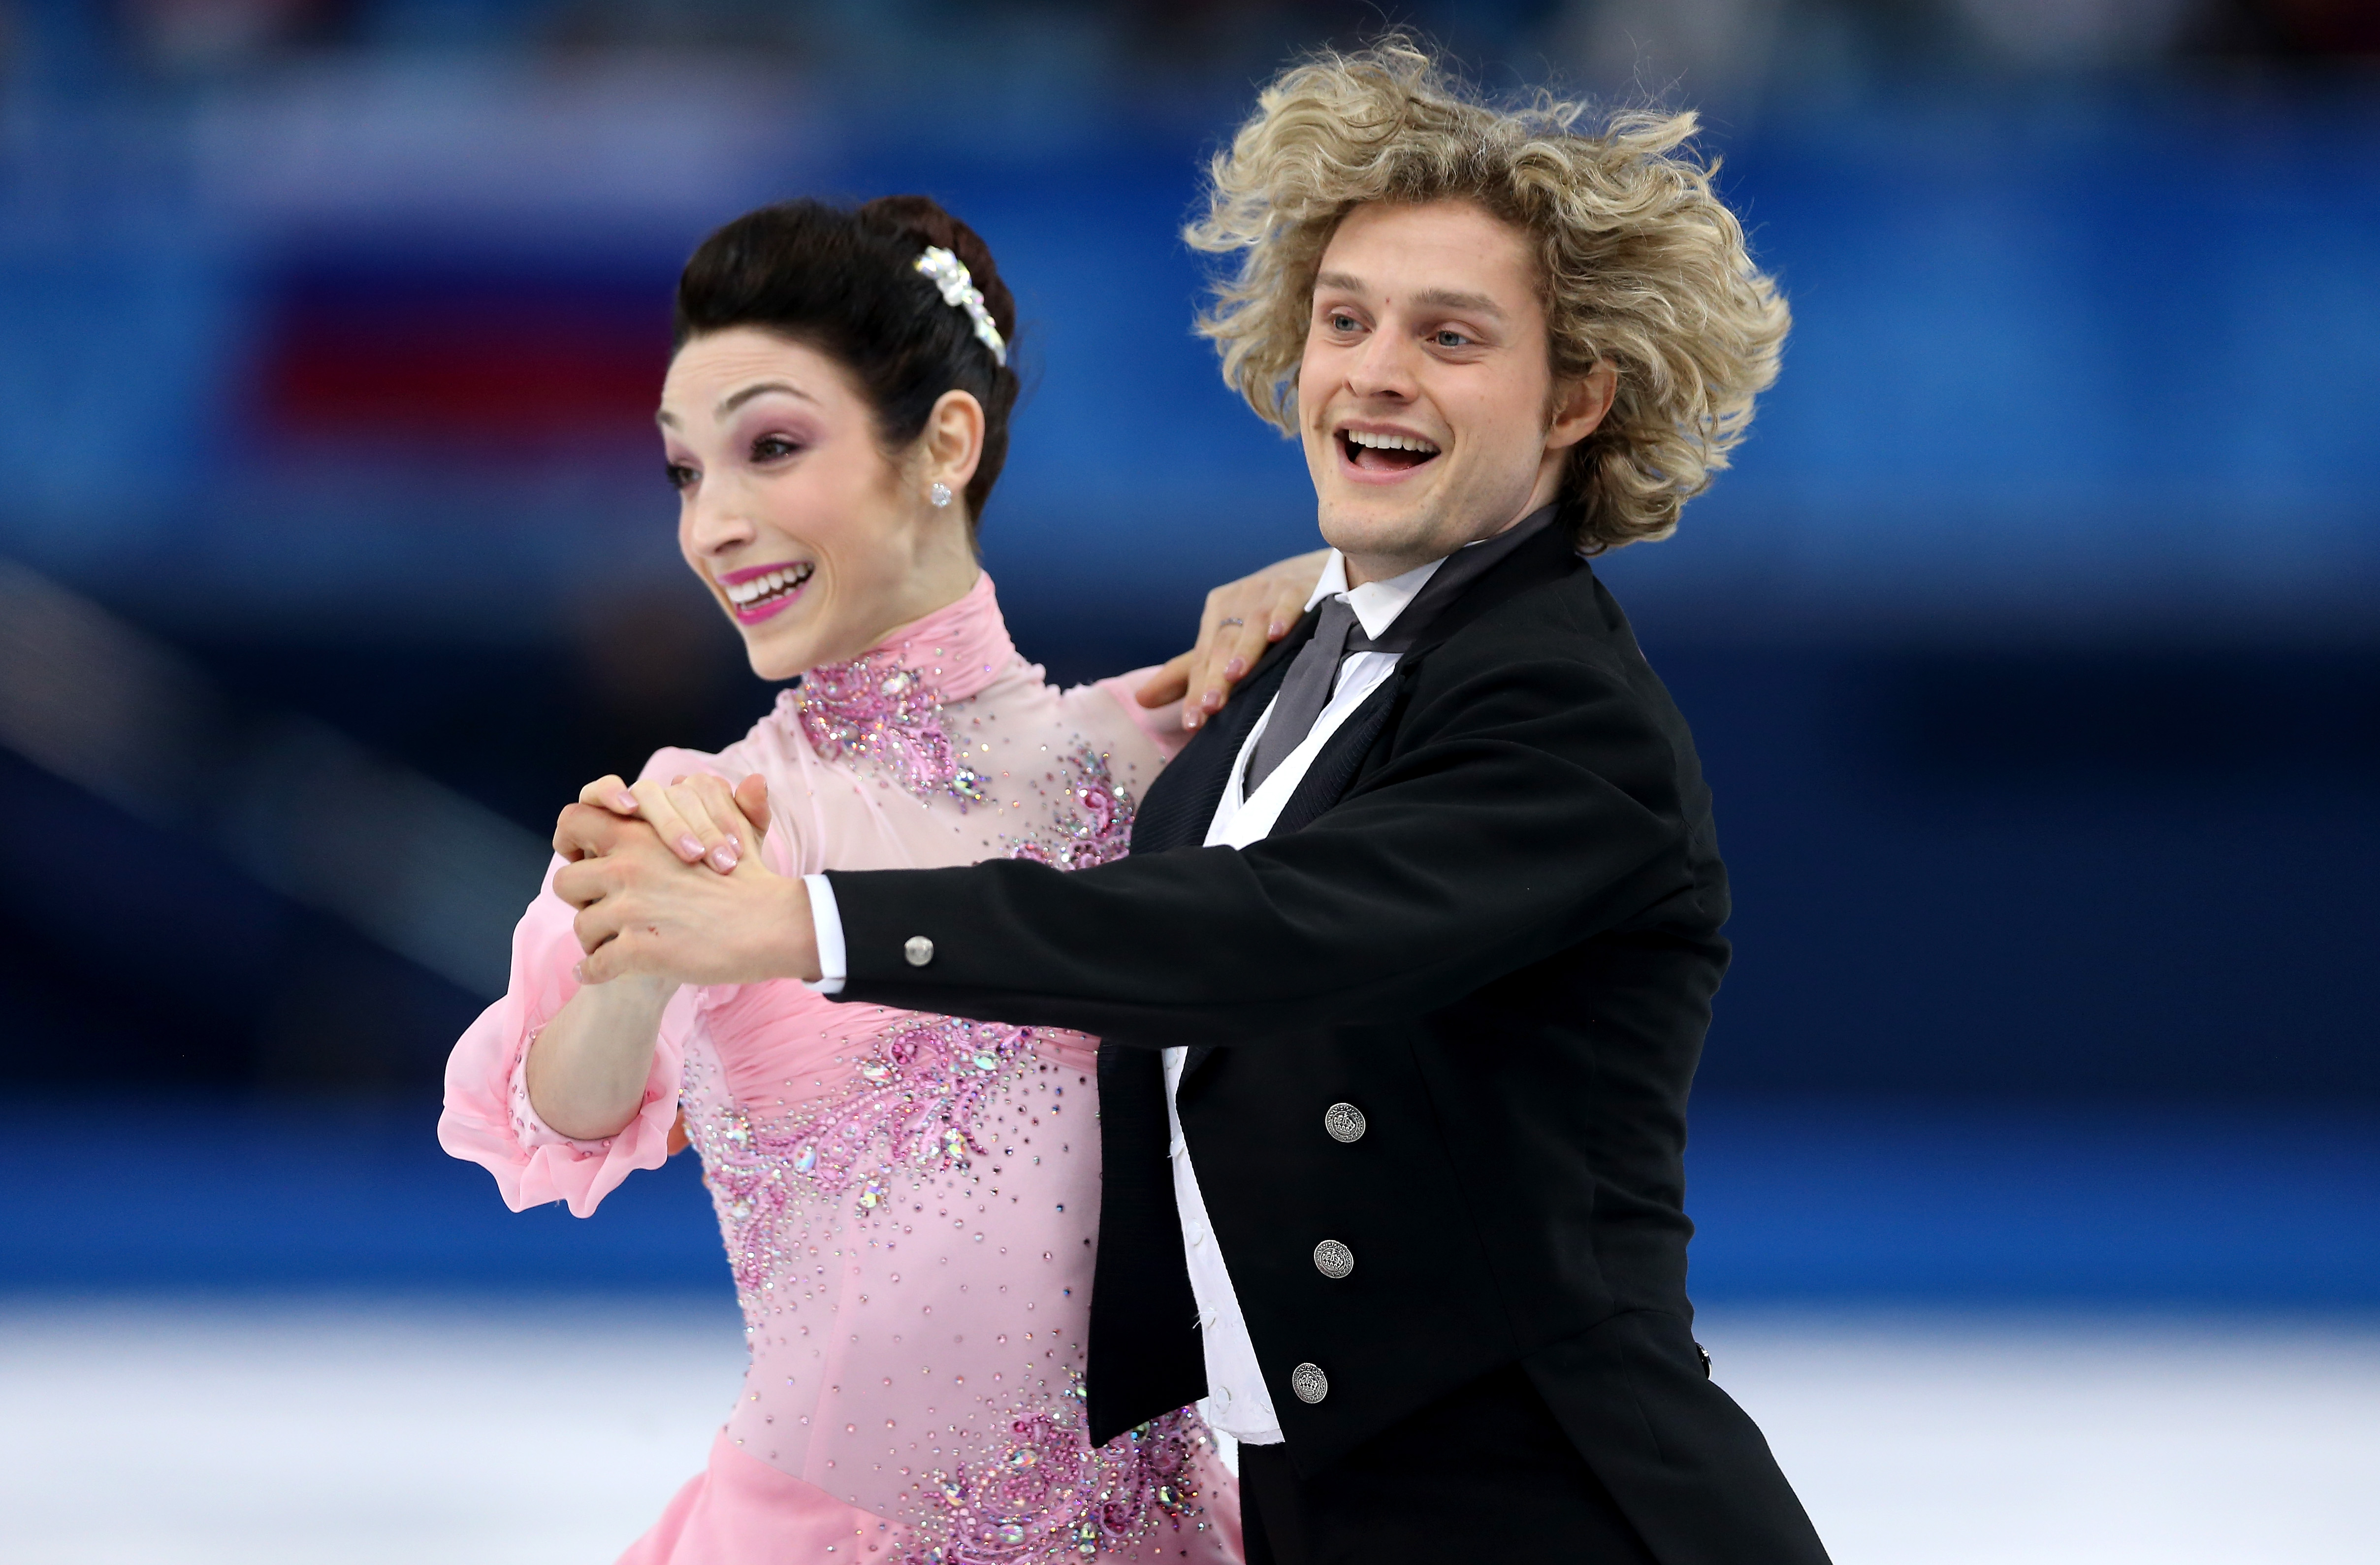 meryl and charlie ice dancers are they dating or not